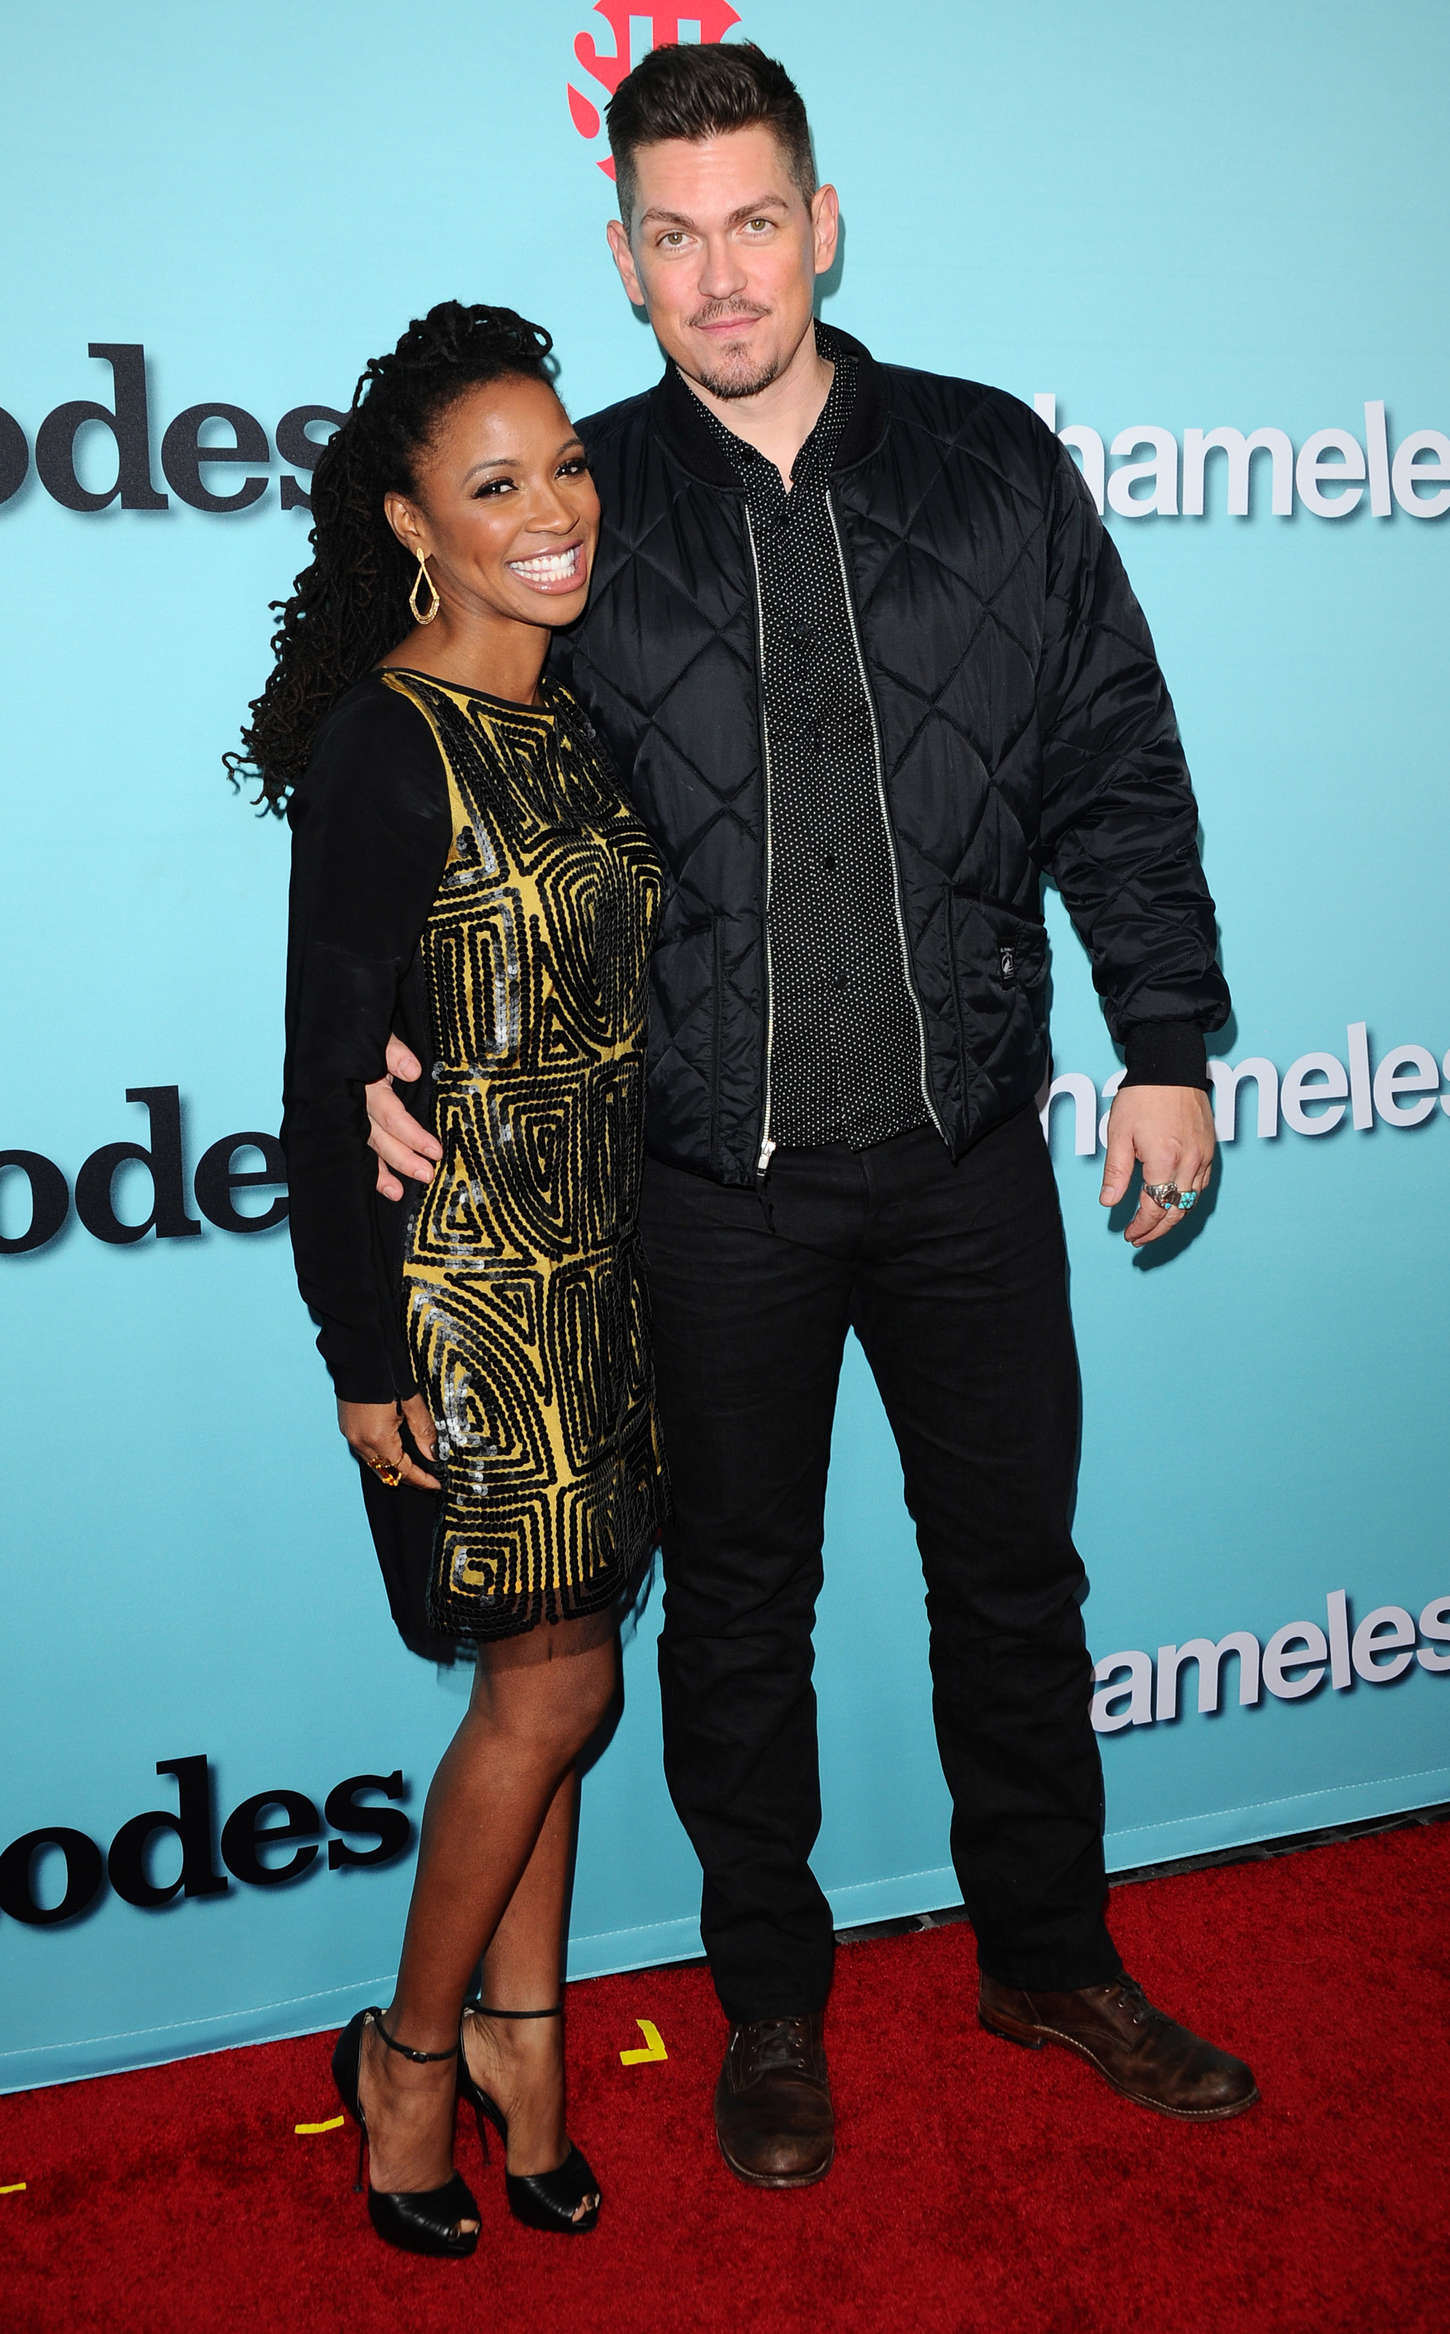 Shanola Hampton Shameless House of Lies and Episodes Premiere in West Hollywood